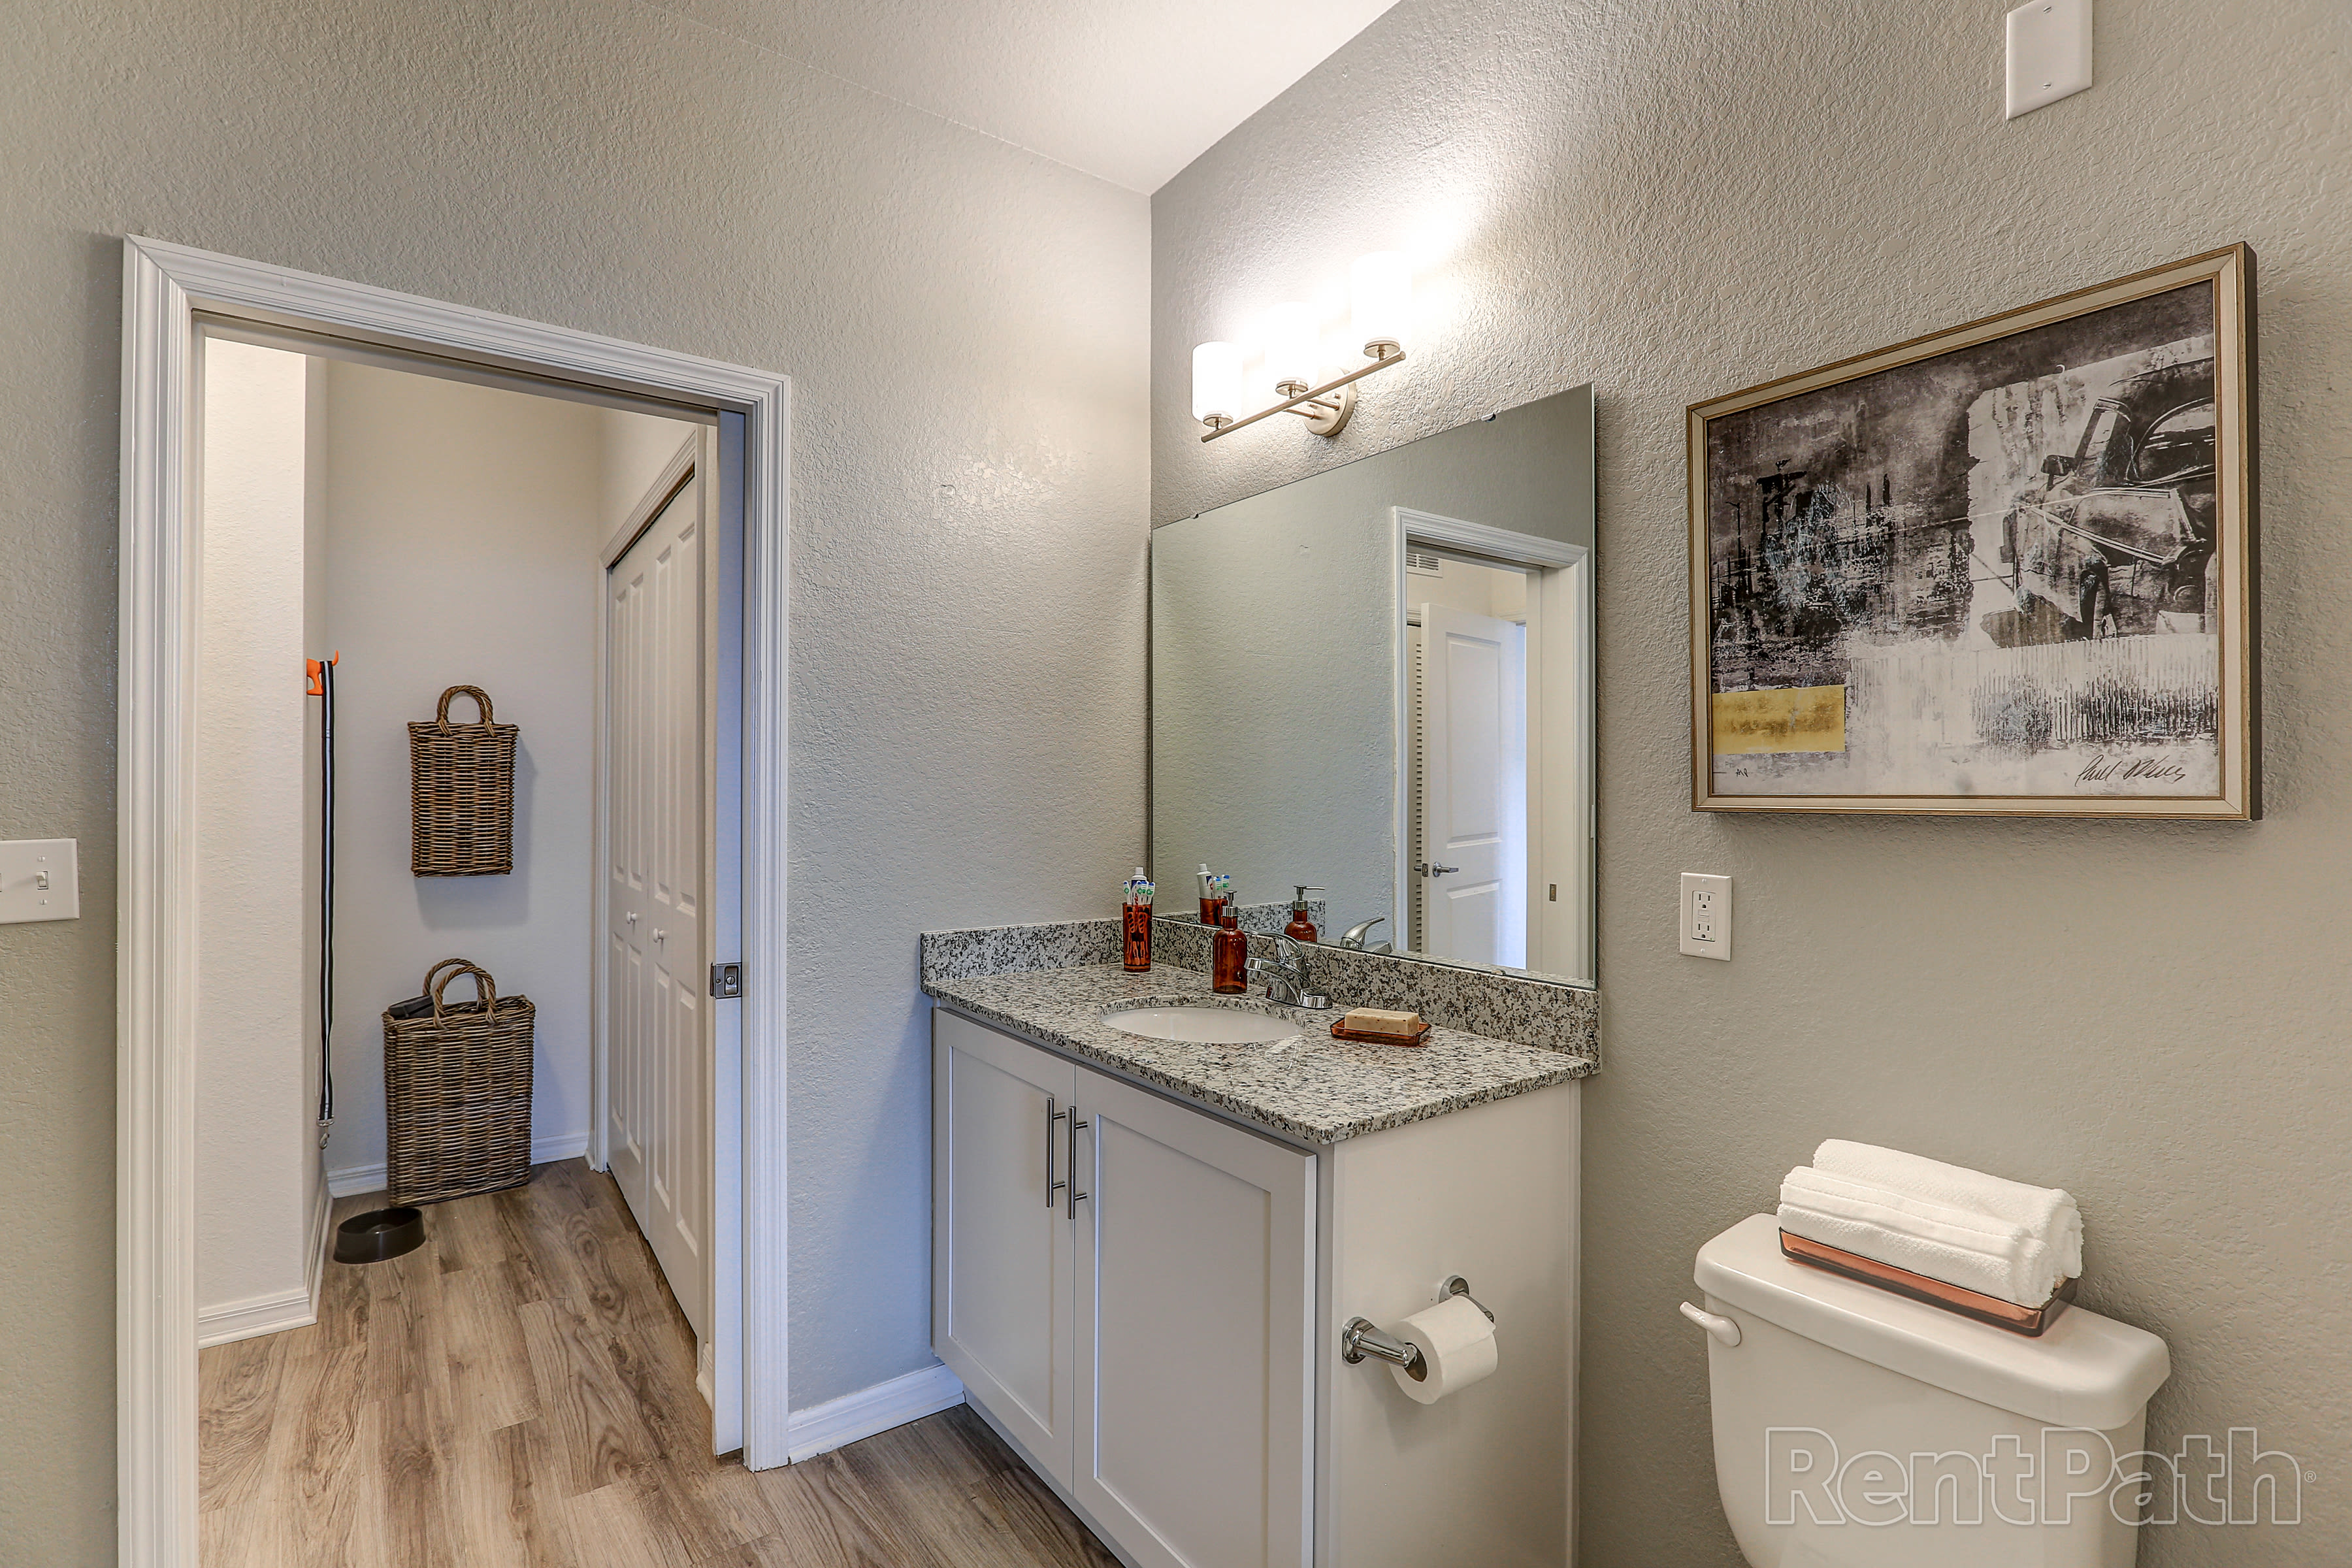 Bathroom at Lola Apartments in Riverview, FL